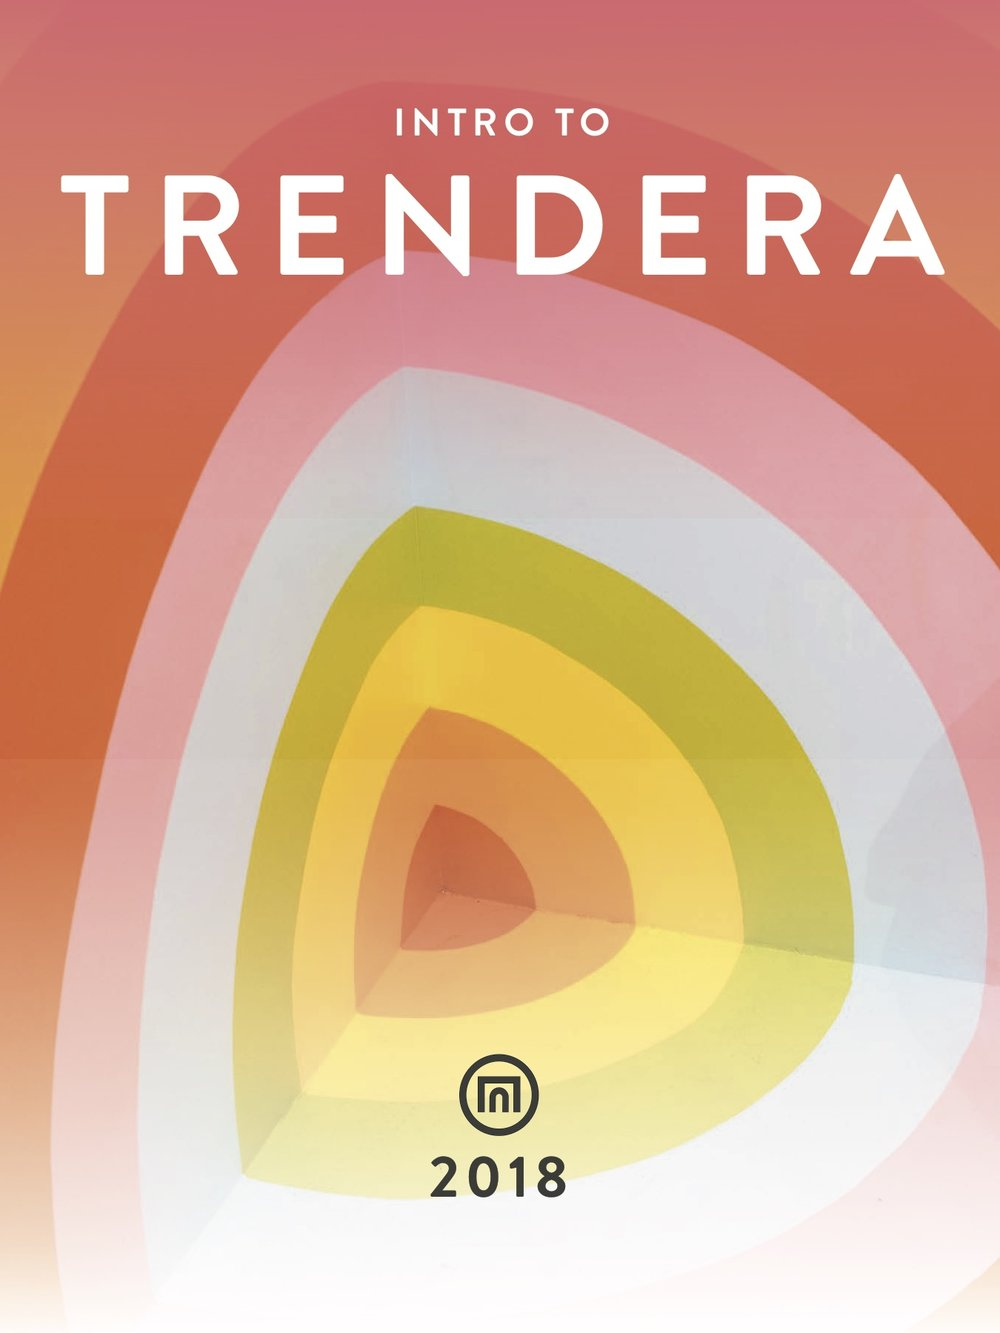 Intro to Trendera (dragged).jpg